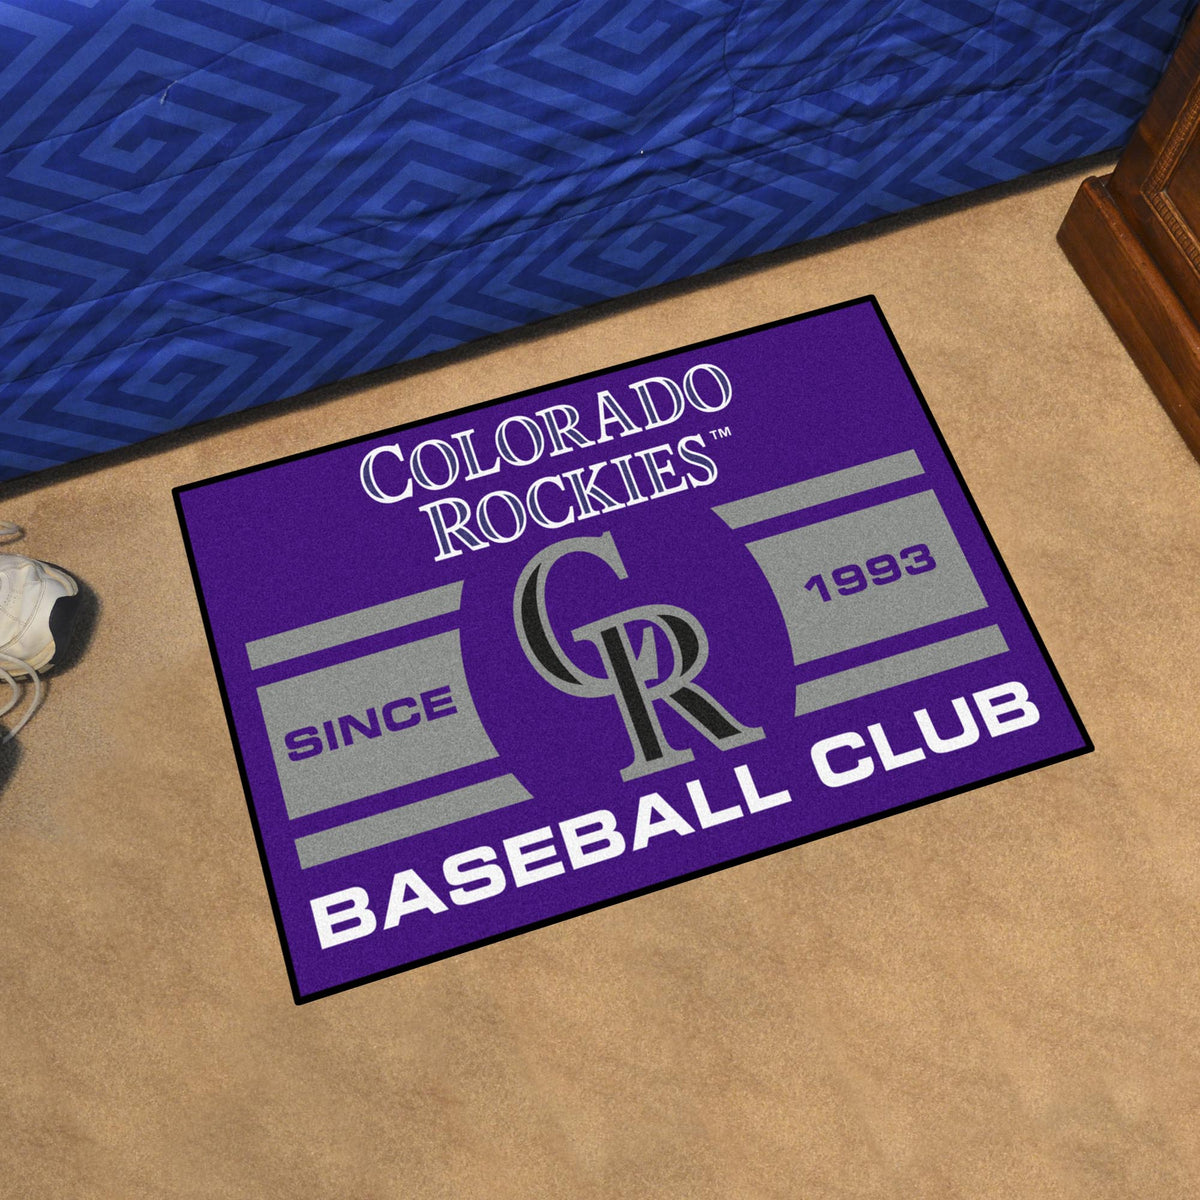 MLB - Uniform Starter Mat MLB Mats, Rectangular Mats, Uniform Starter Mat, MLB, Home Fan Mats Colorado Rockies